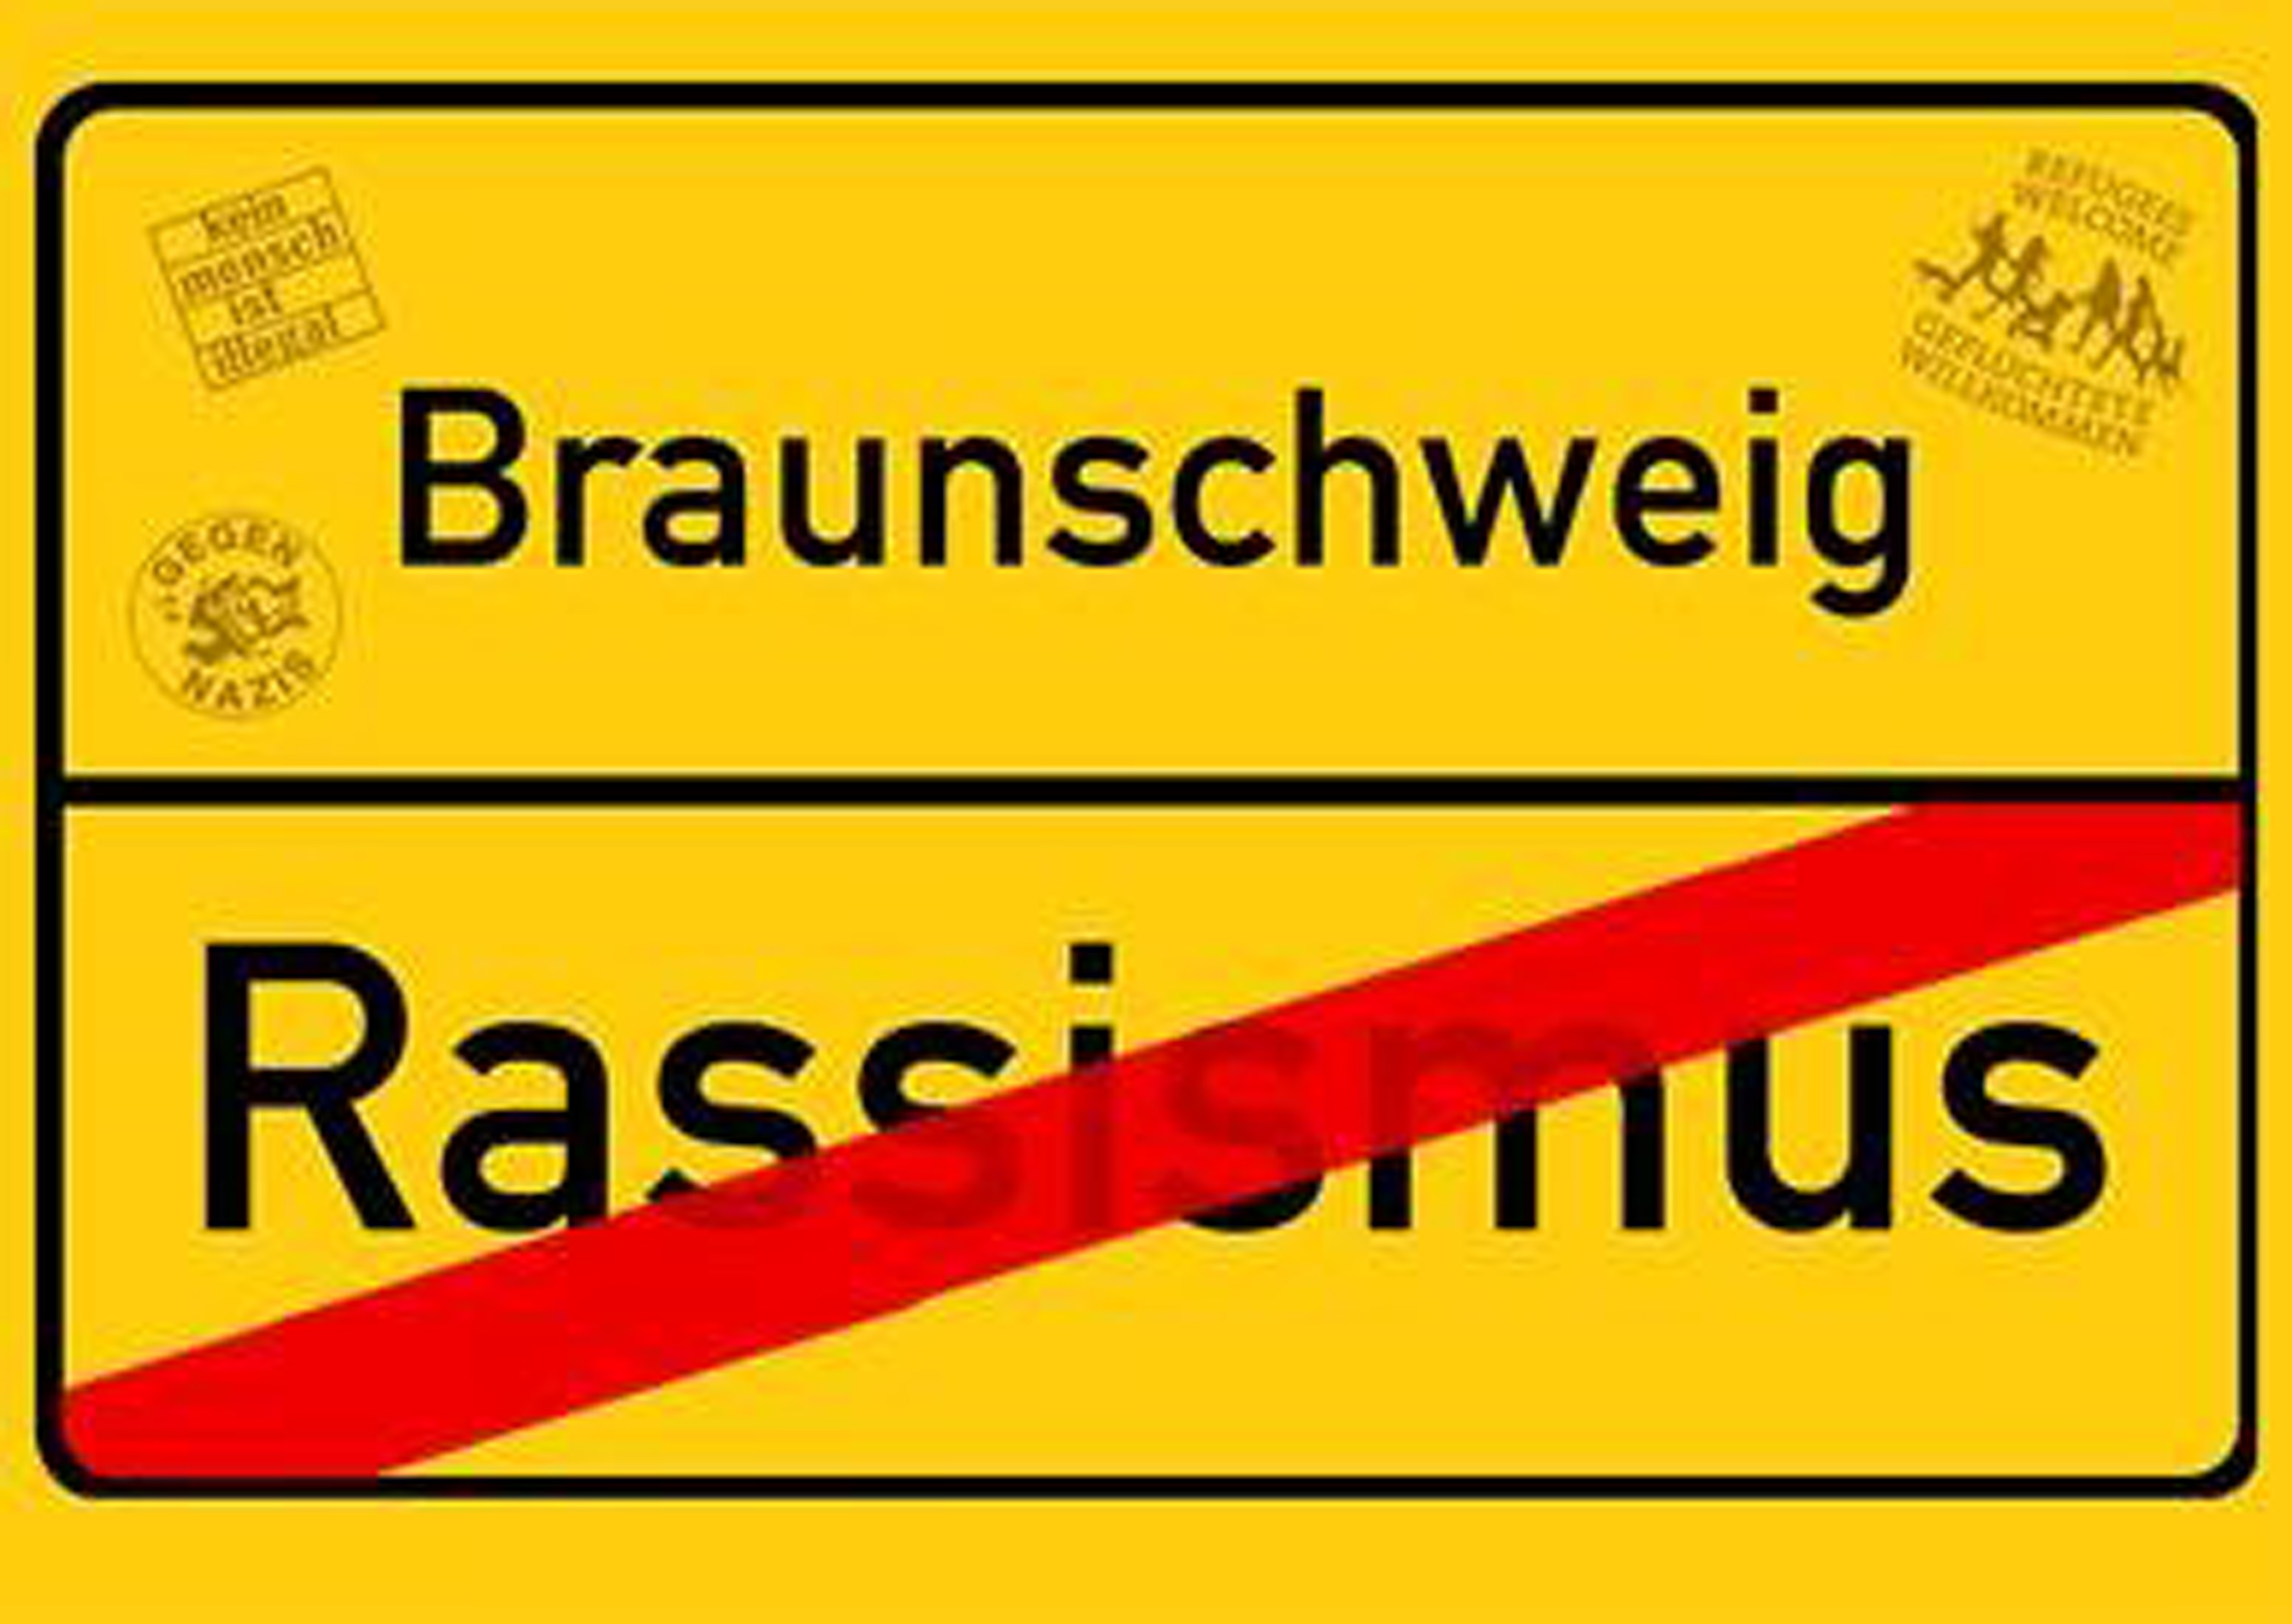 Bs Rassismus groß